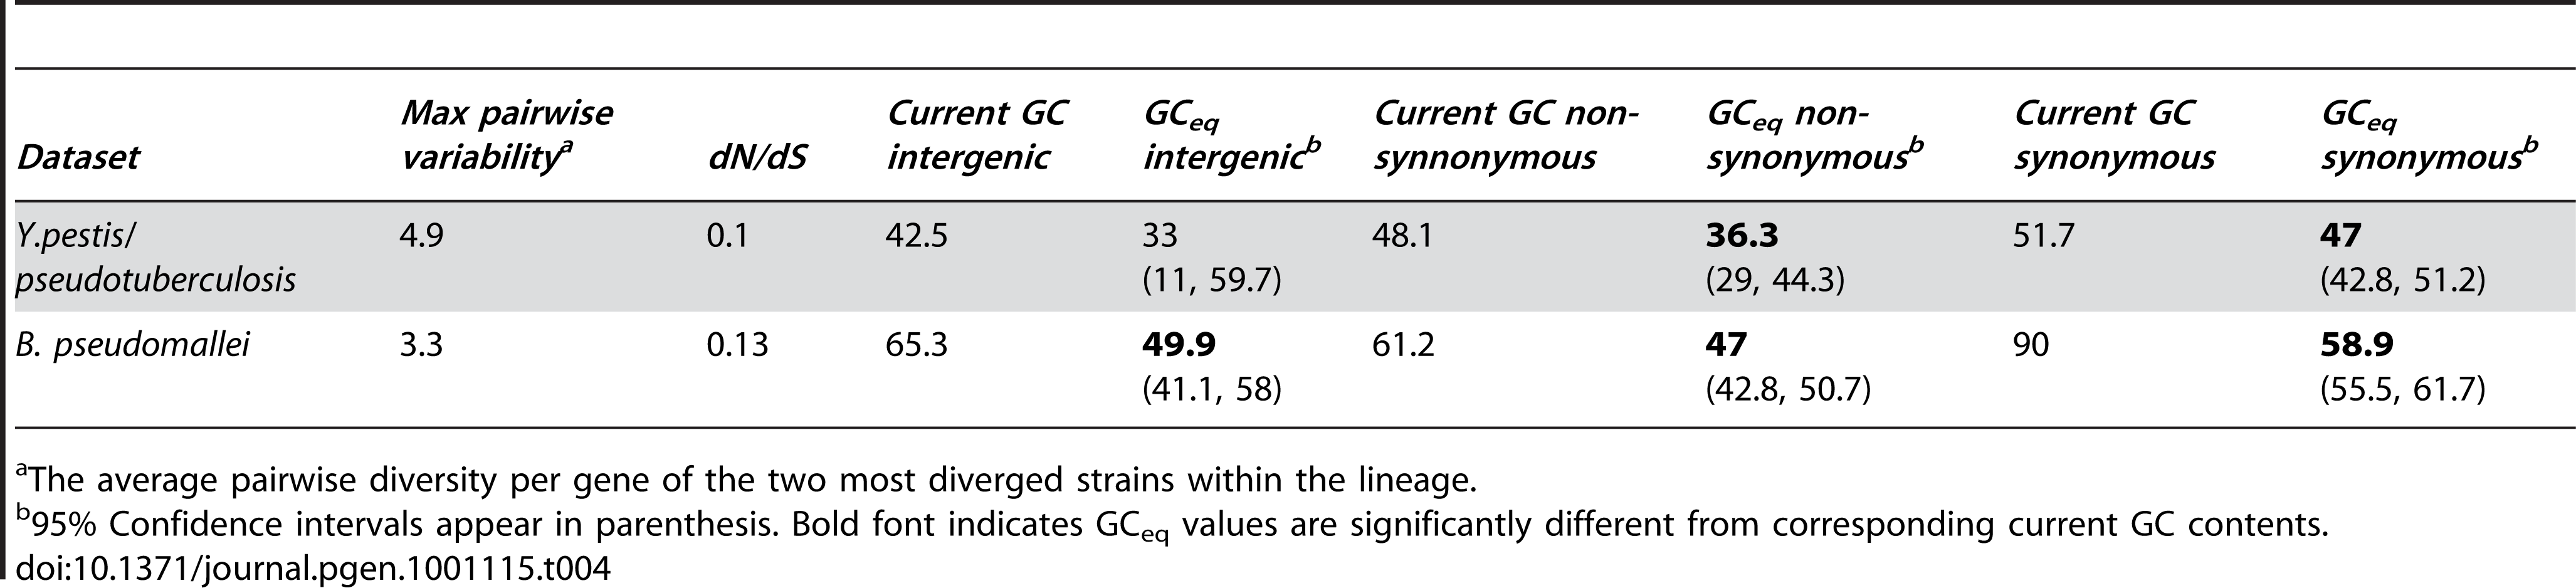 Summary of results for two more distantly related lineages.